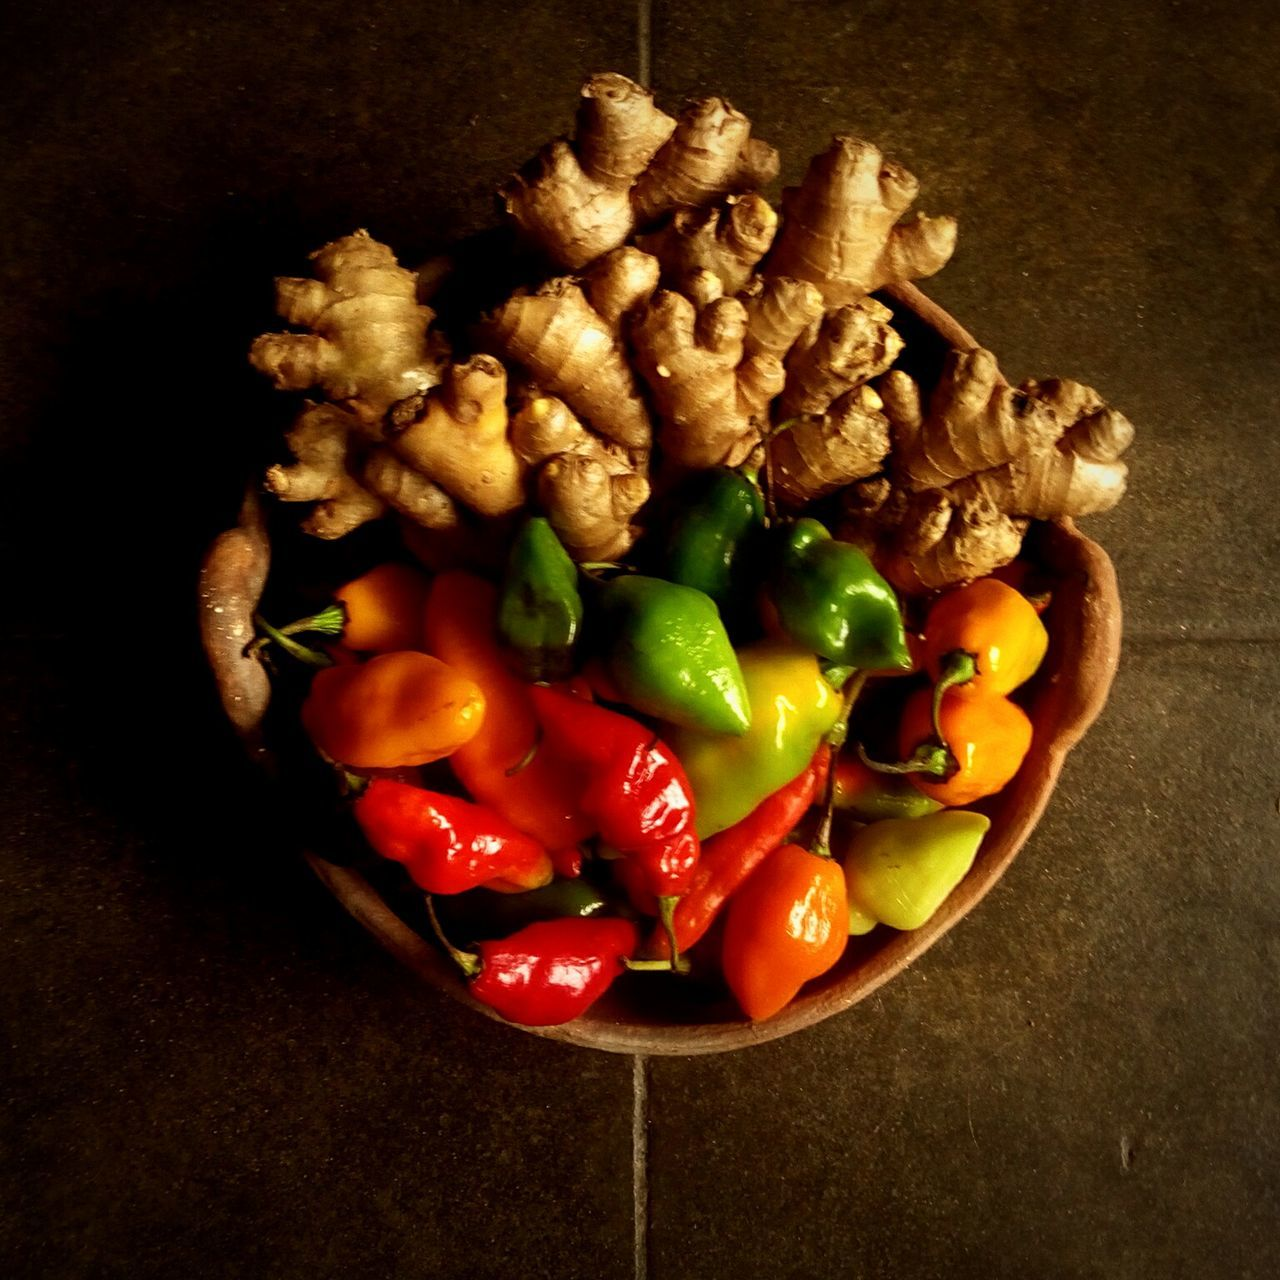 Preparacion previa Healthy Eating Food And Drink Vegetable No People Food Studio Shot Close-up Multi Colored Red Bell Pepper Indoors  Freshness Directly Above Day Vegetables Ginger